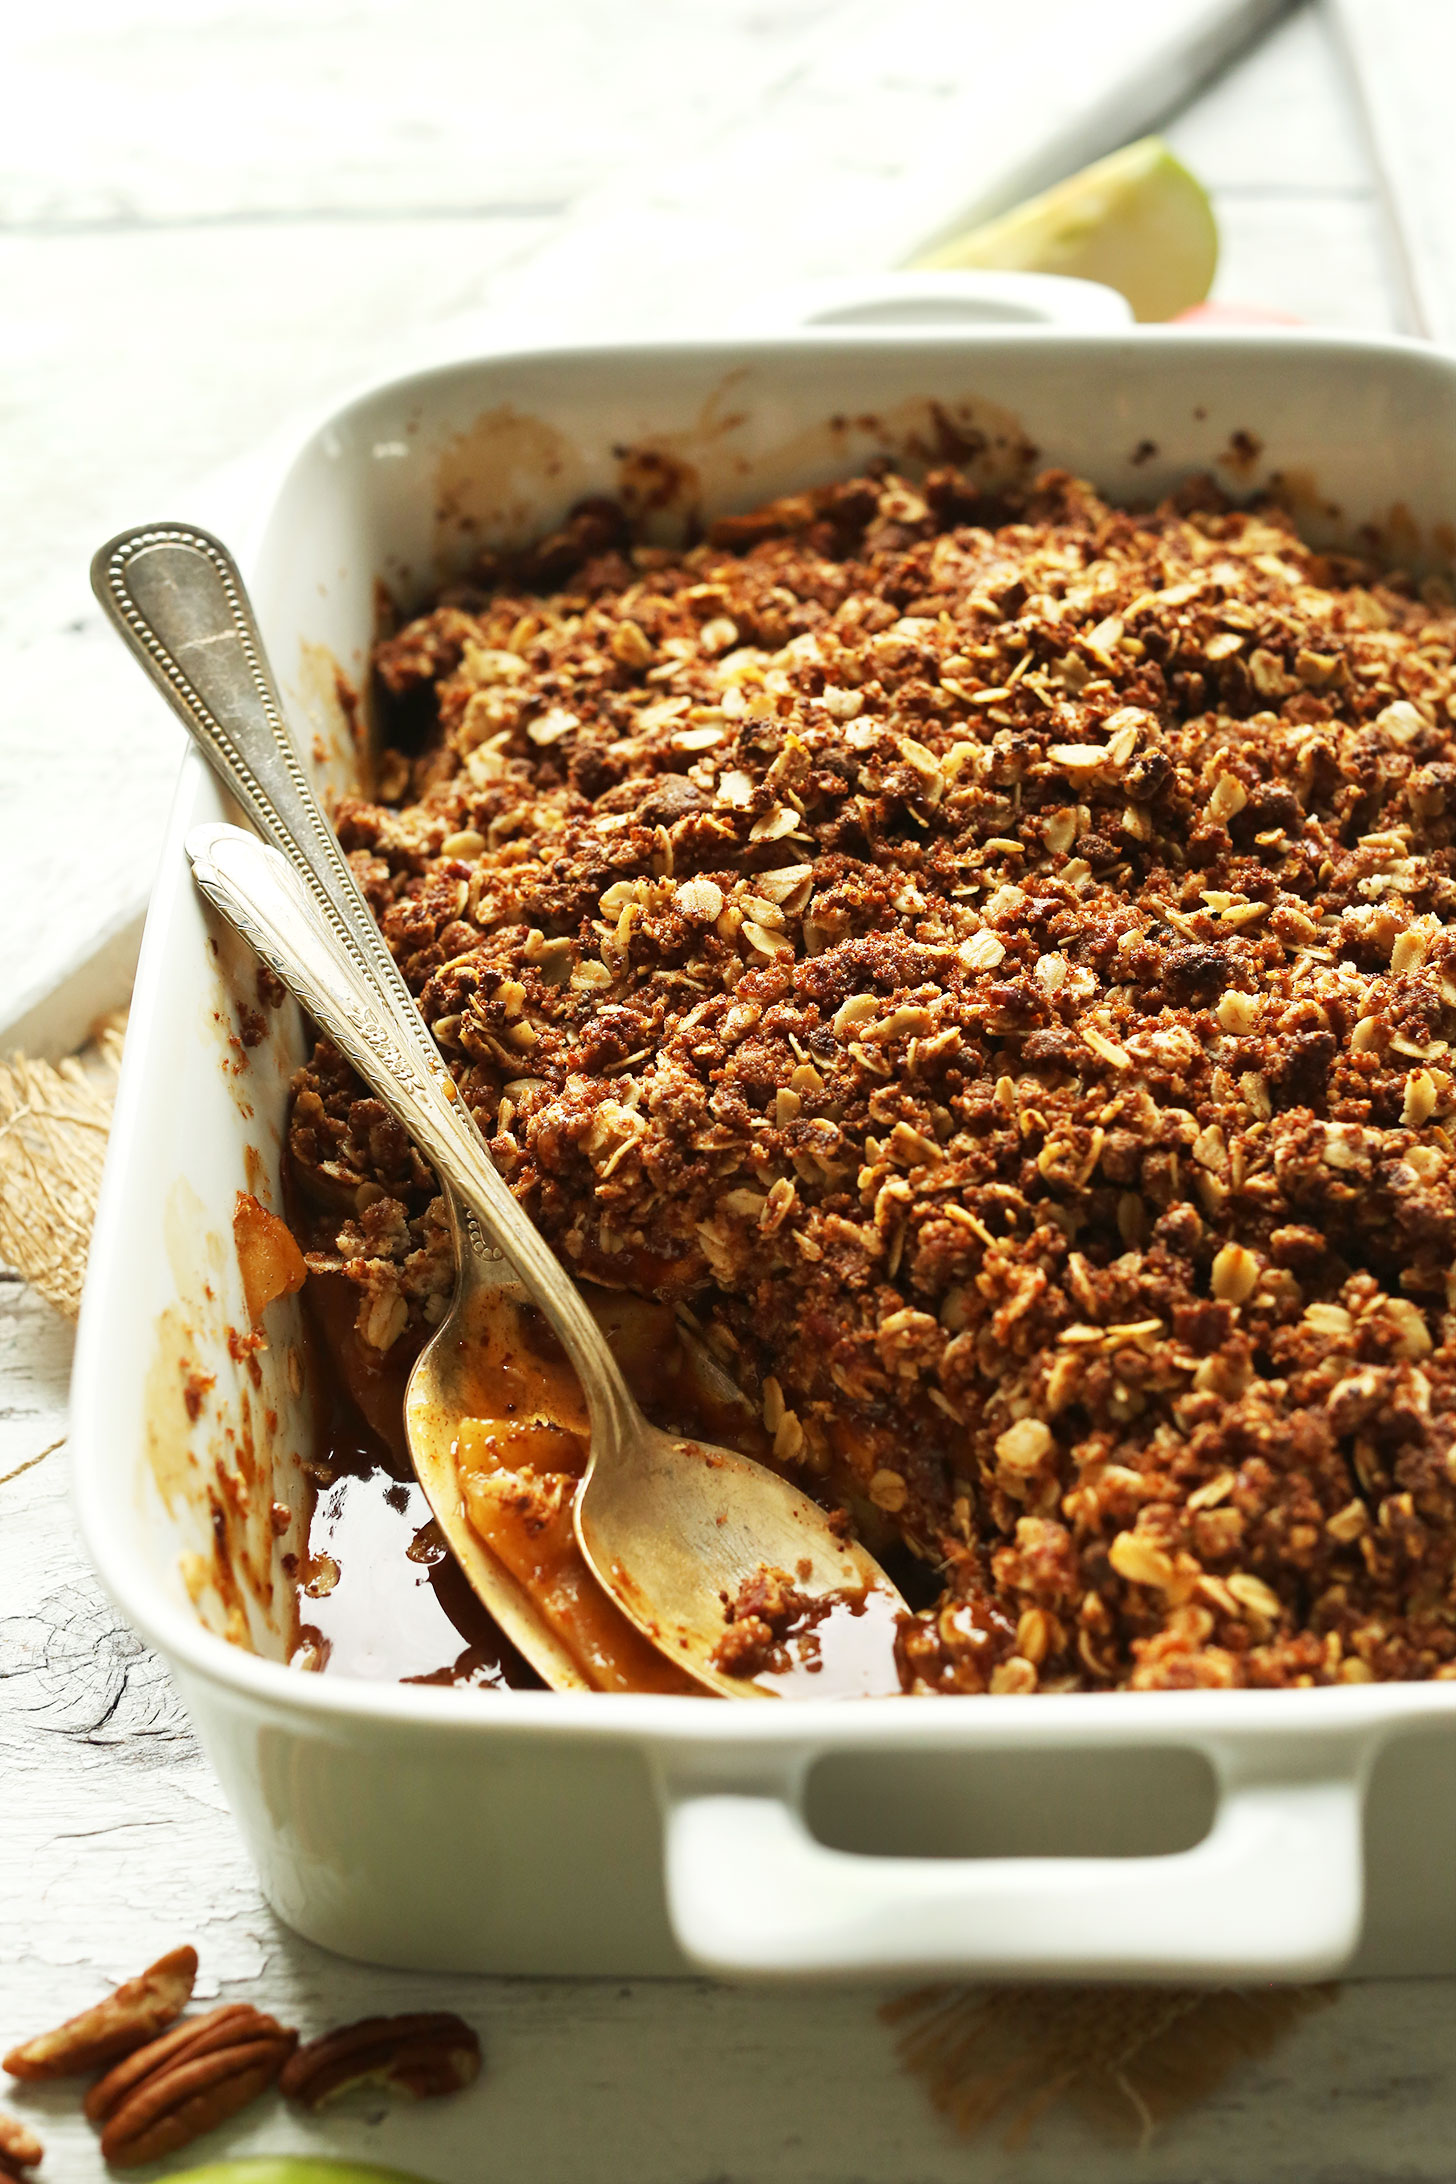 THE BEST Vegan Apple Crisp with a Pecan-Oat Topping, 1 Bowl, and NATURALLY SWEETENED! #vegan #apple #fall #thanksgiving #recipe #applecrisp #minimalistbaker